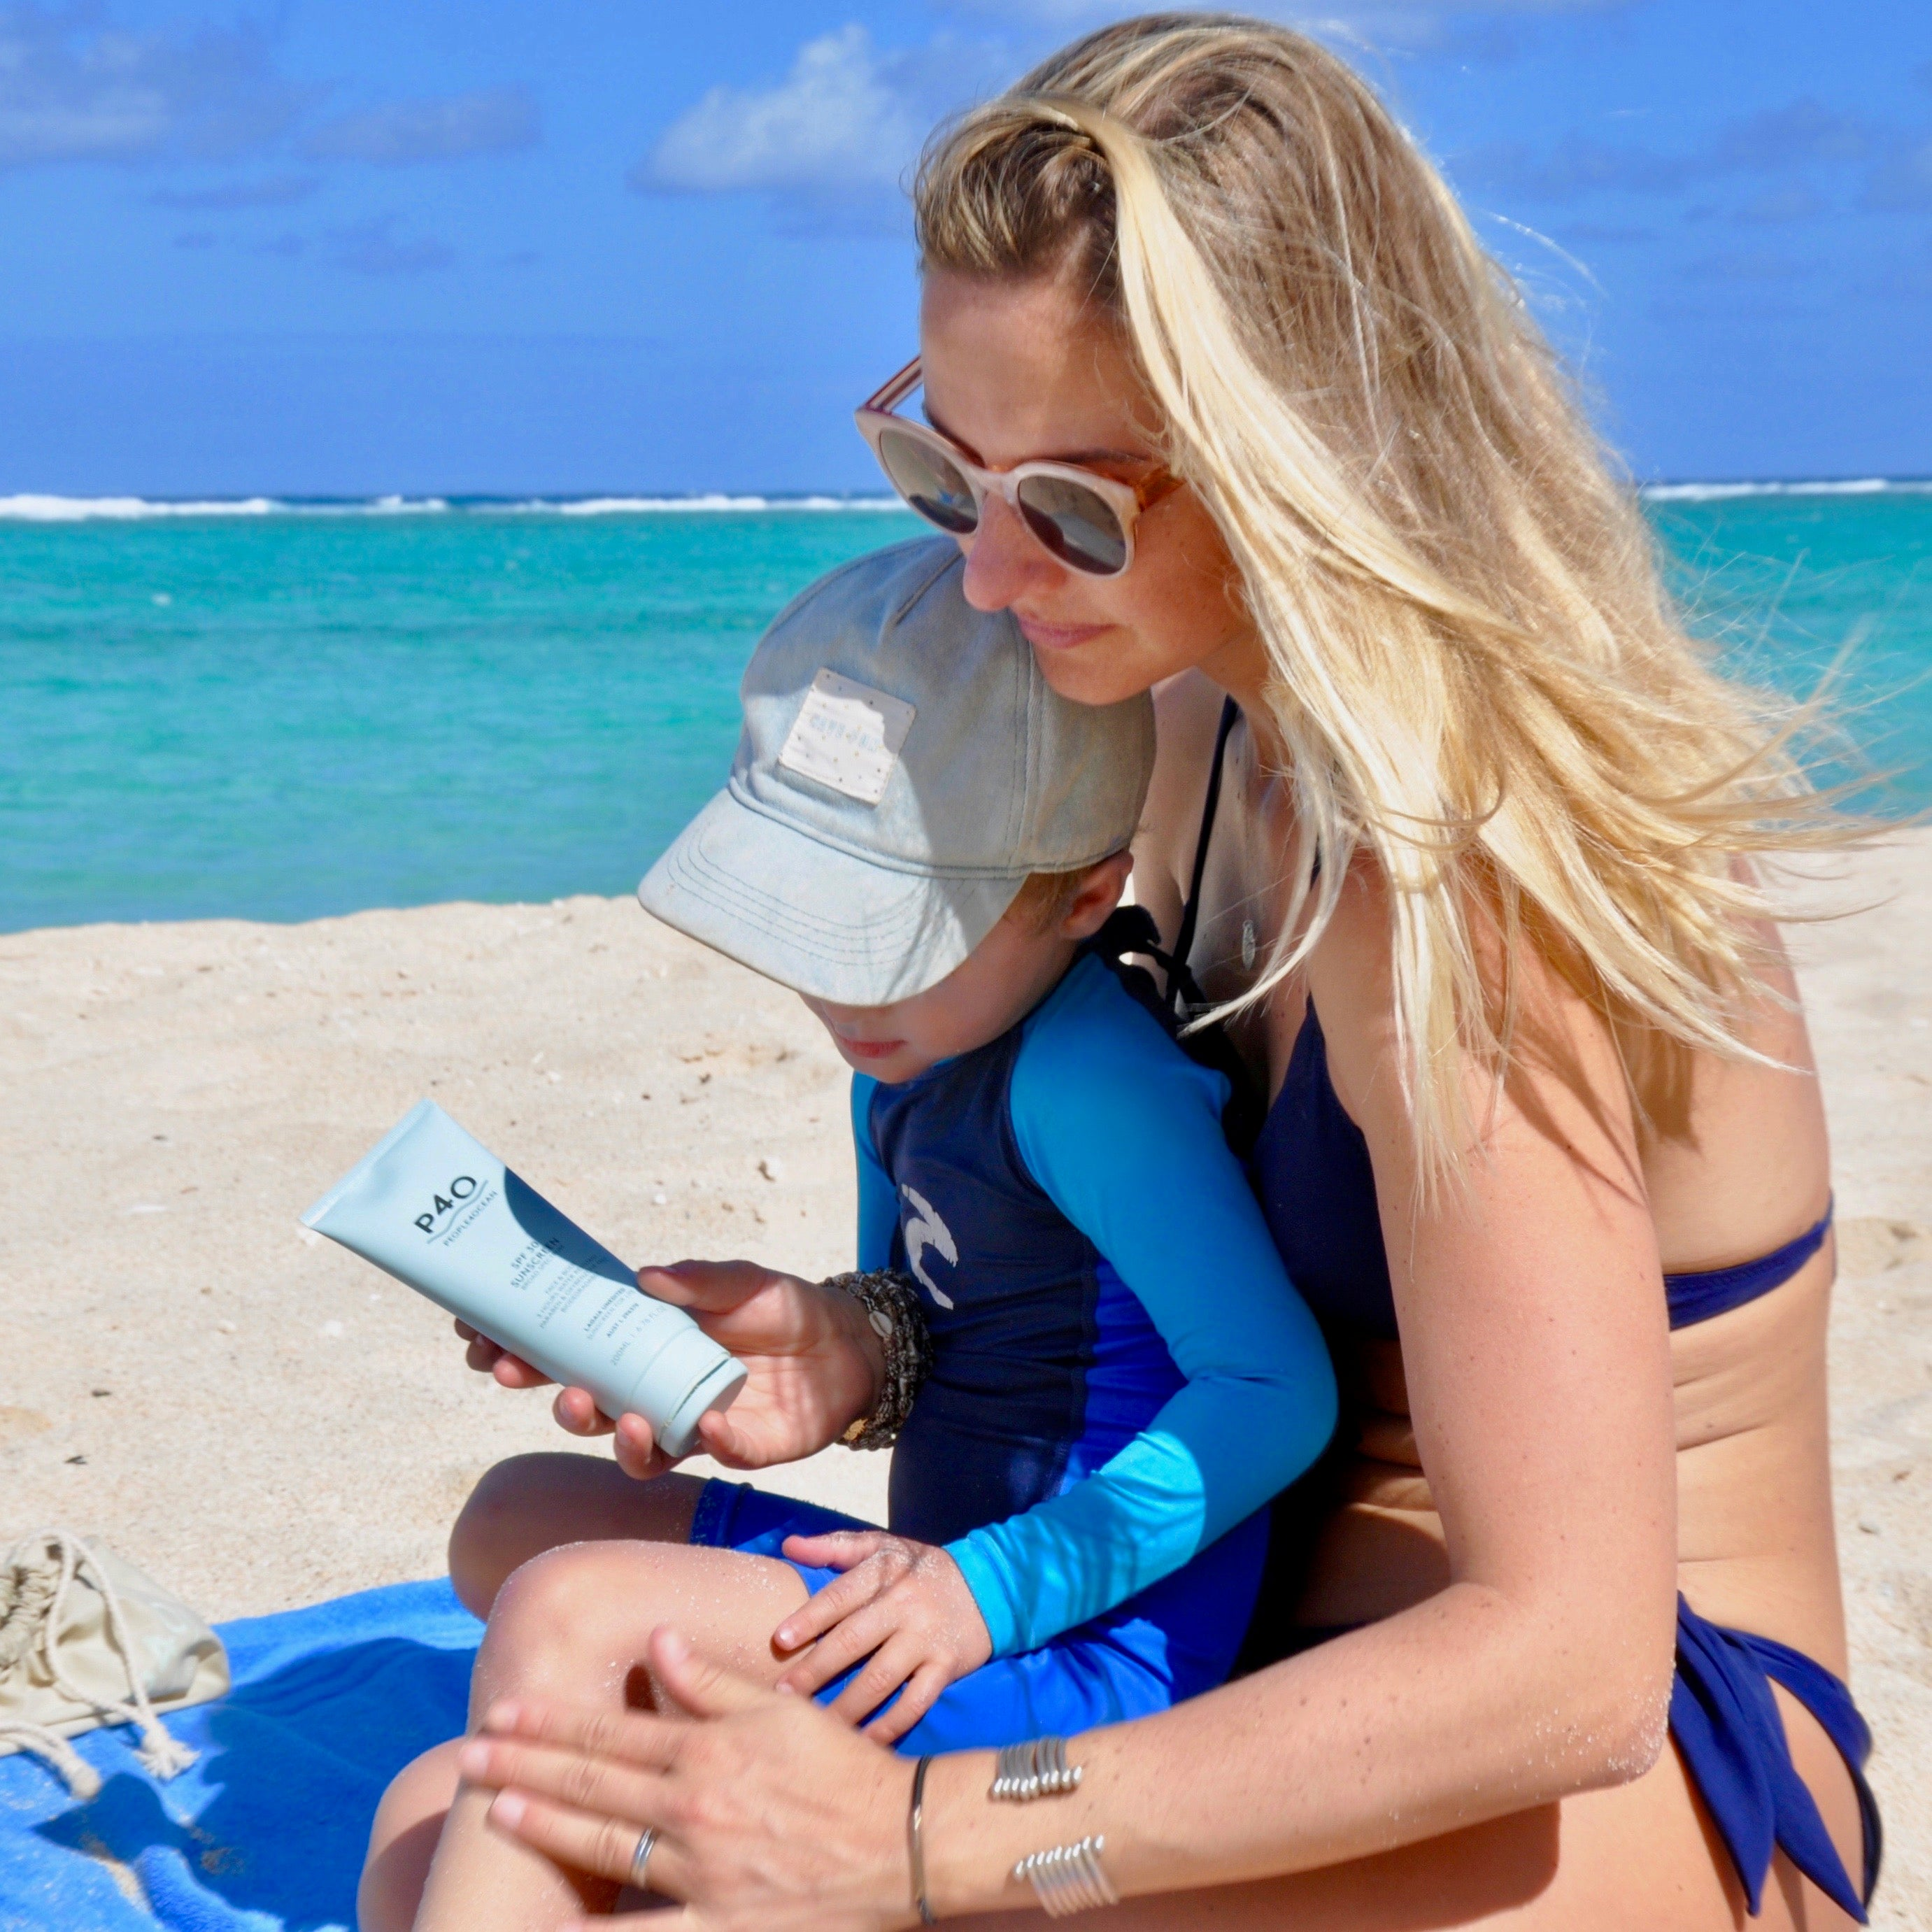 Mother applies People4Ocean SPF30 sunscreen to child at the beach